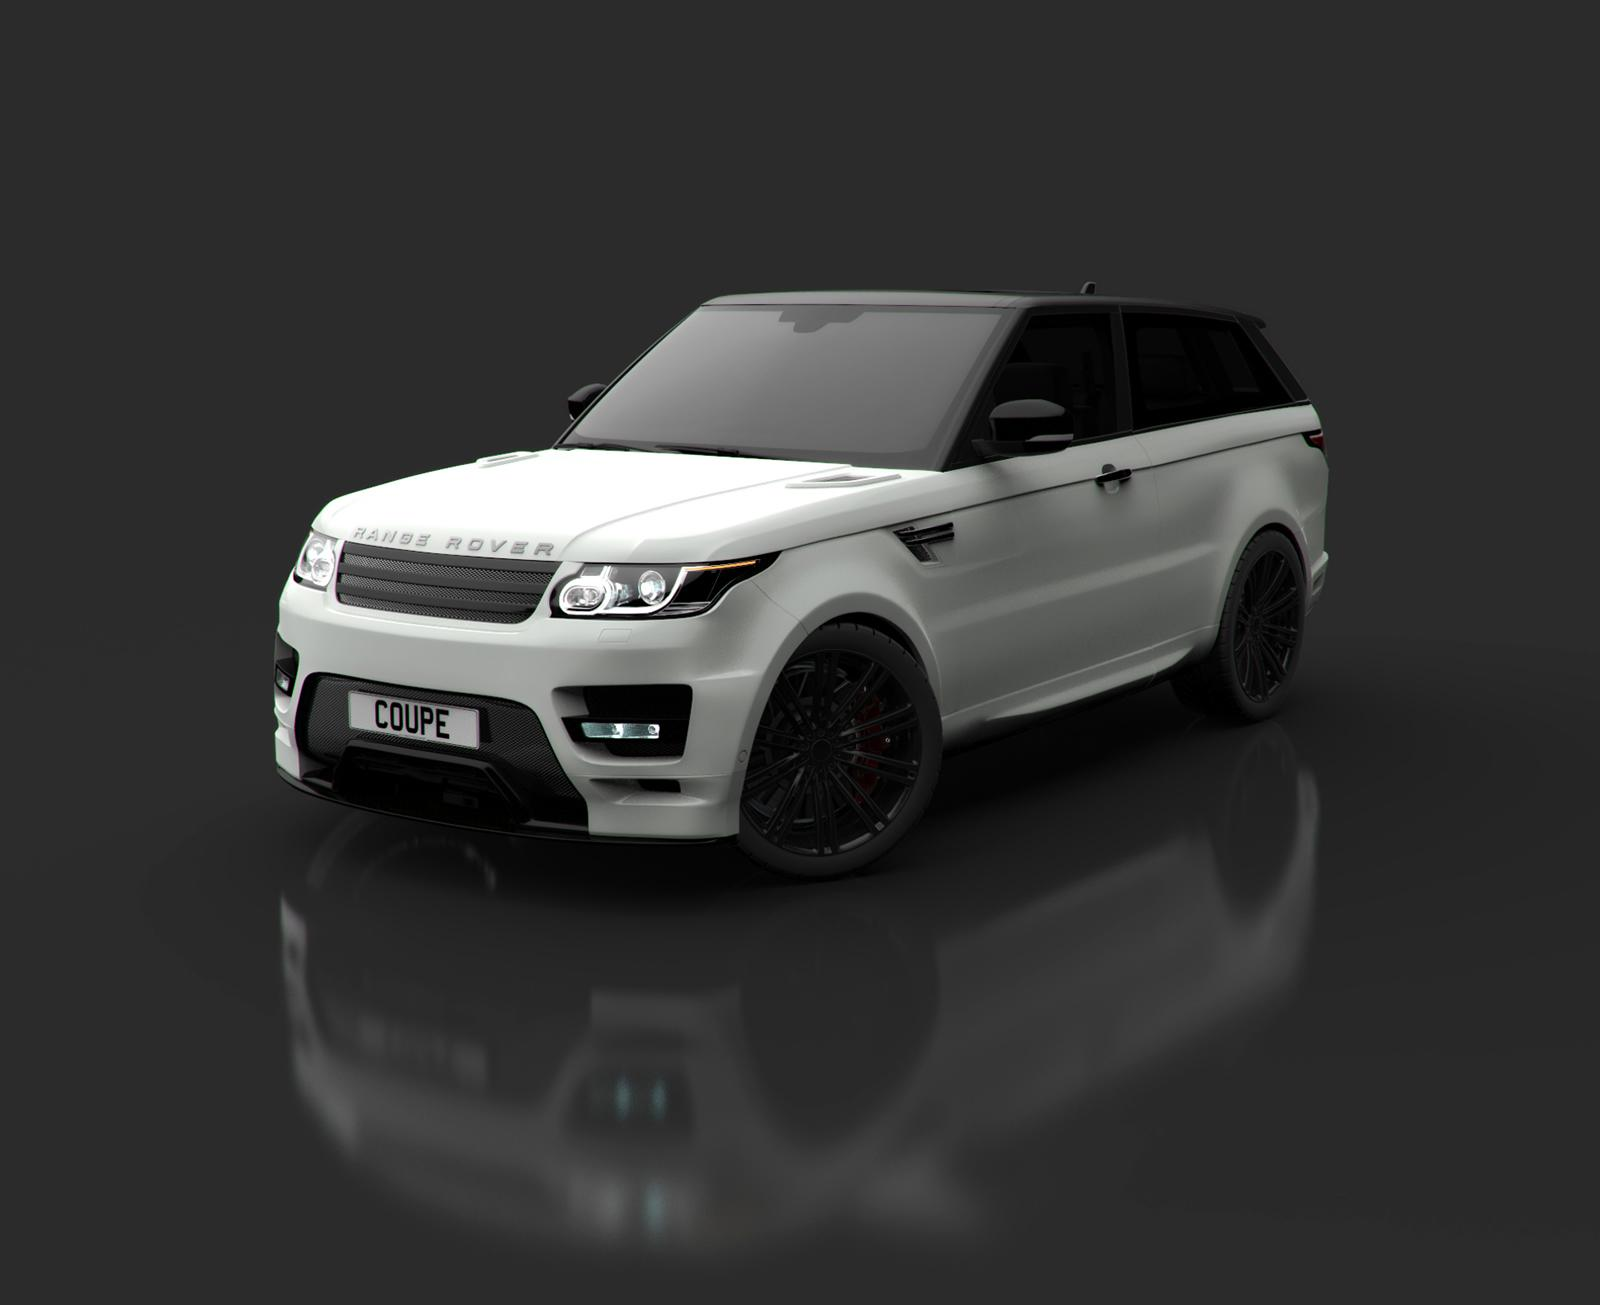 2014 range rover sport becomes a coupe via bulgari design updated autoevolution. Black Bedroom Furniture Sets. Home Design Ideas